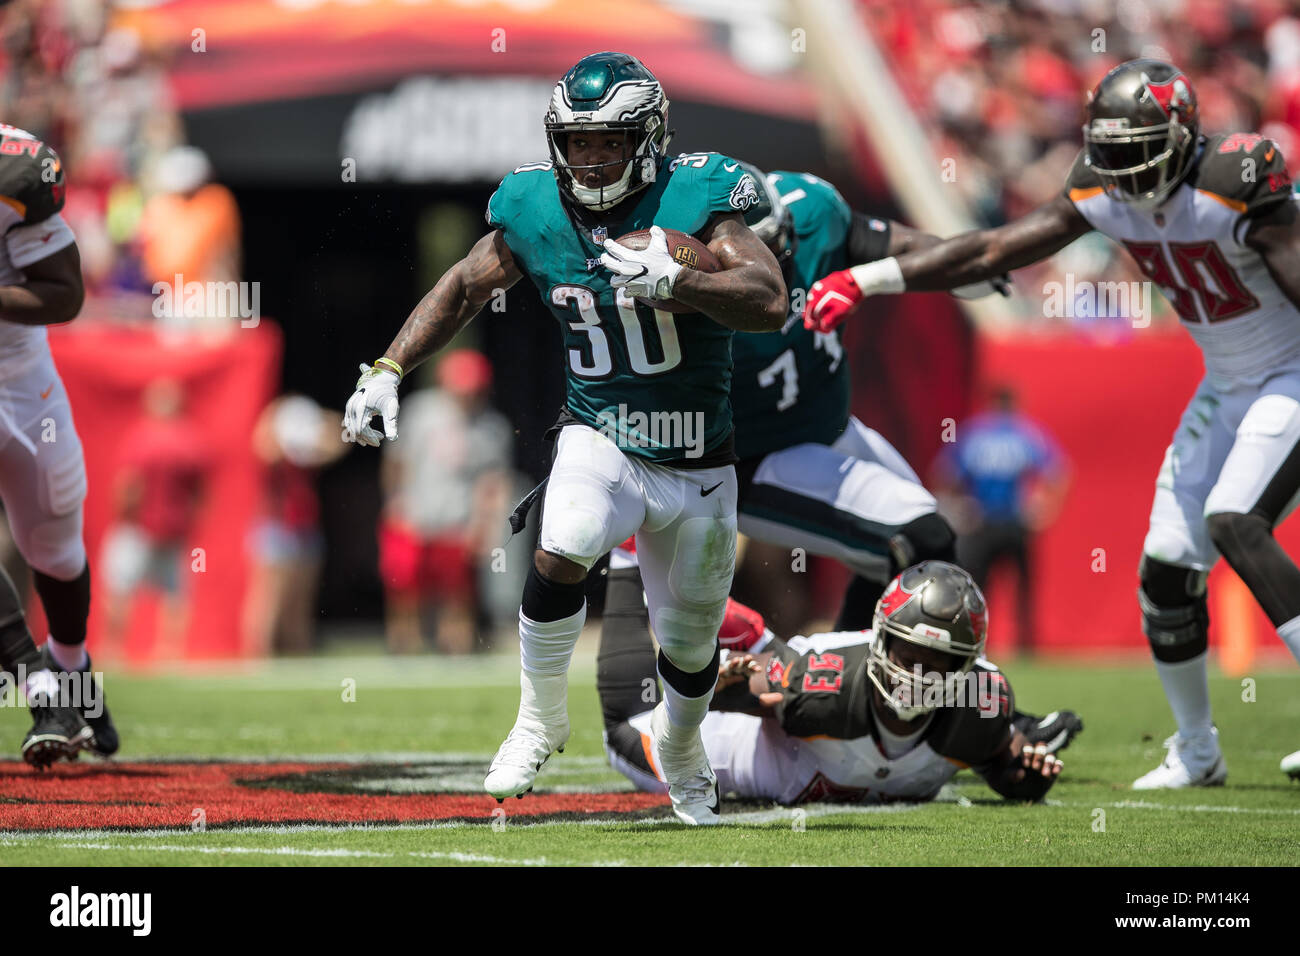 Tampa, Florida, USA. 16th Sep, 2018. Philadelphia Eagles running back Corey Clement (30) carries the ball during the first quarter against the Tampa Bay Buccaneers at Raymond James Stadium on Sunday September 16, 2018 in Tampa, Florida. Credit: Travis Pendergrass/ZUMA Wire/Alamy Live News - Stock Image